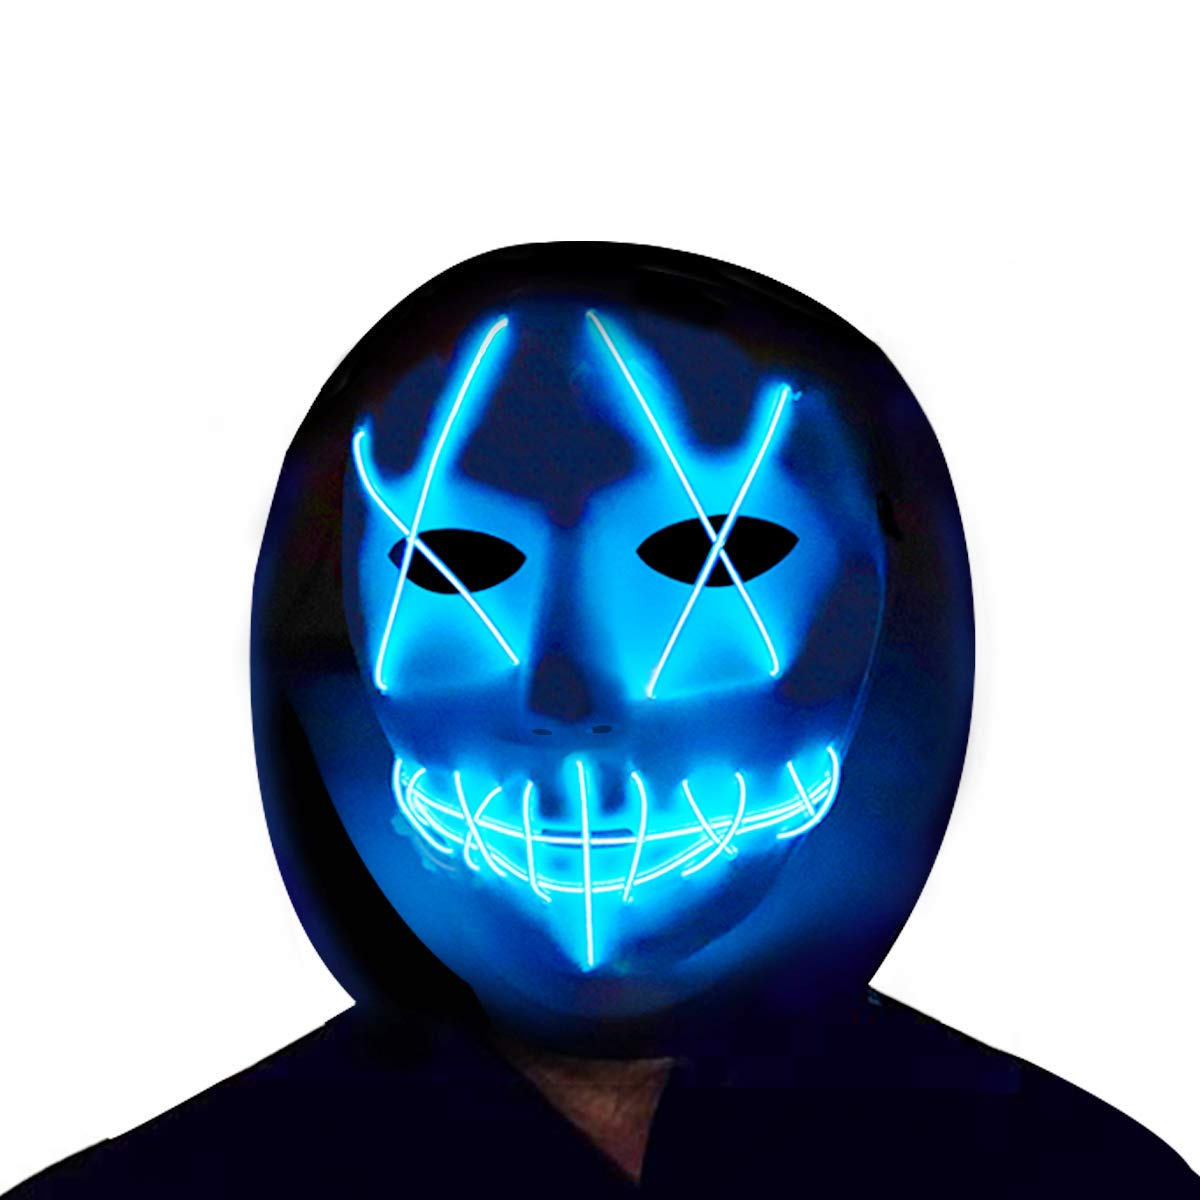 Halloween LED Mask Light Up Purge Mask Glow in The Dark Cosplay EL Wire Halloween Festival Party Supplies White X-Blue) CHARMCZ